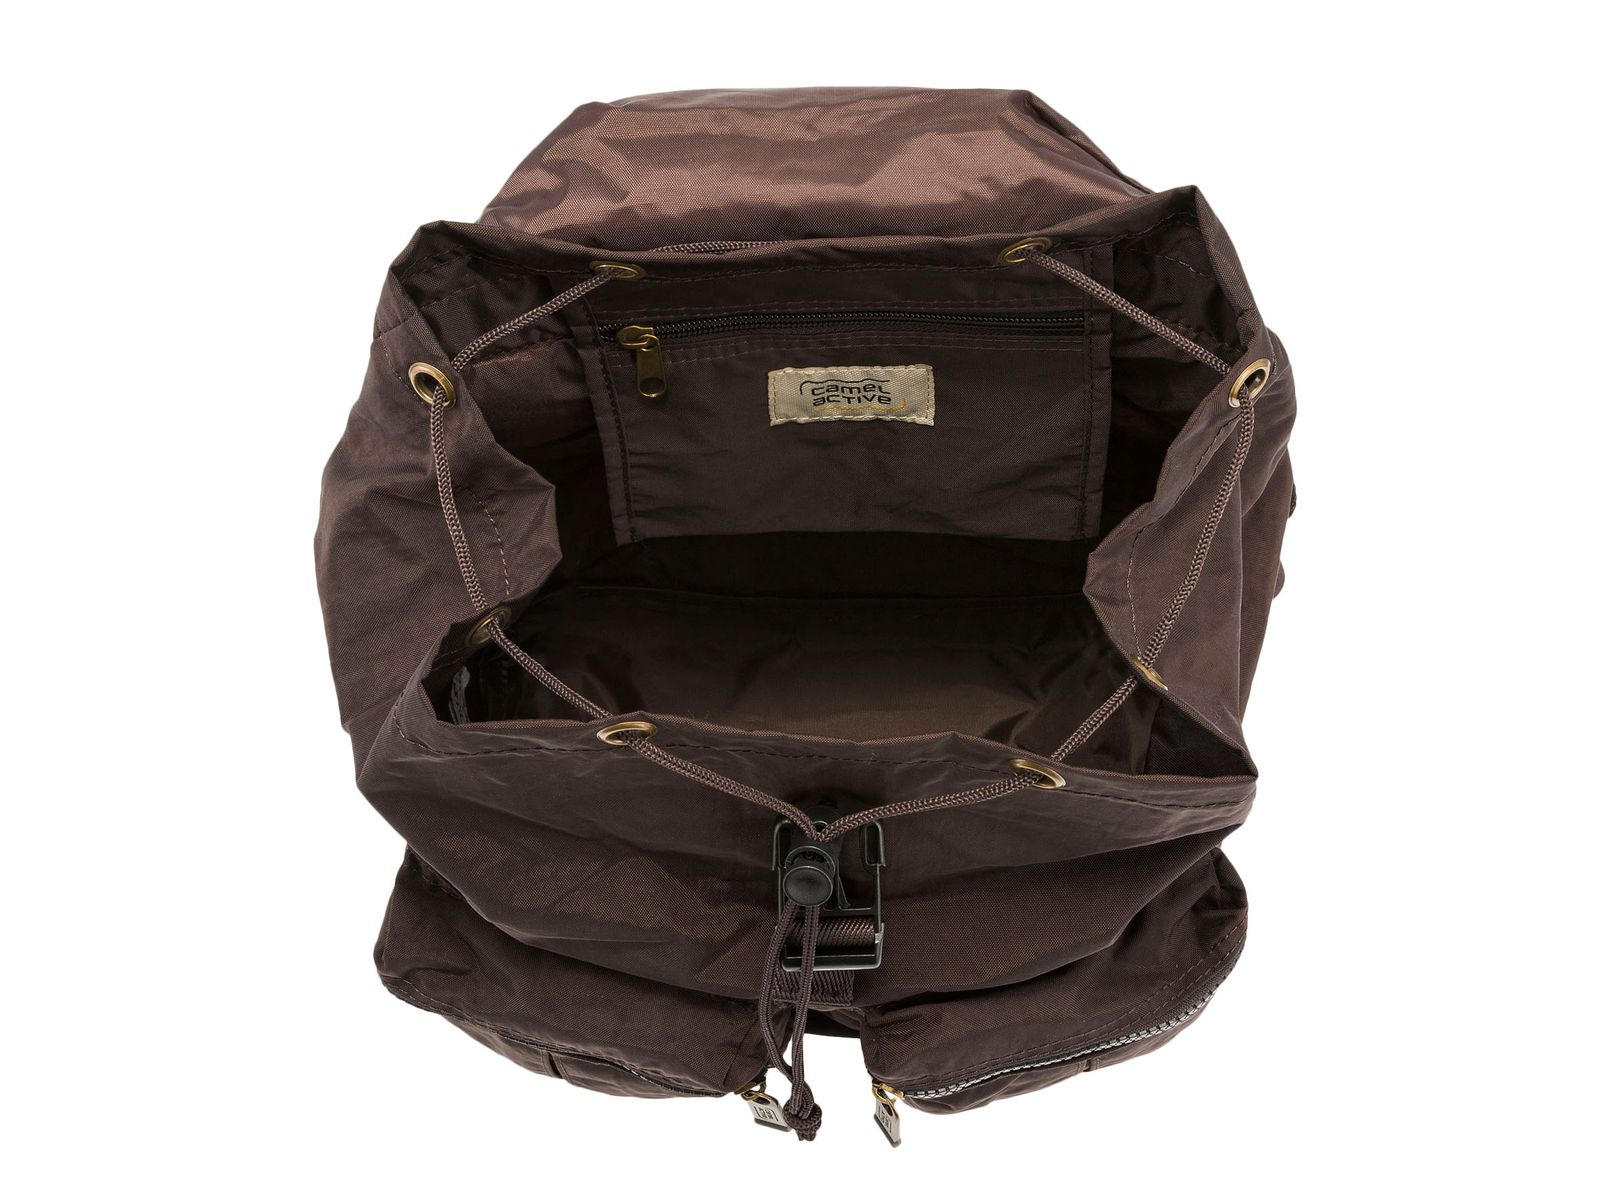 Camel Active Journey Fun Rucksack Buy Cheap Latest Collections UlxIShKqDY